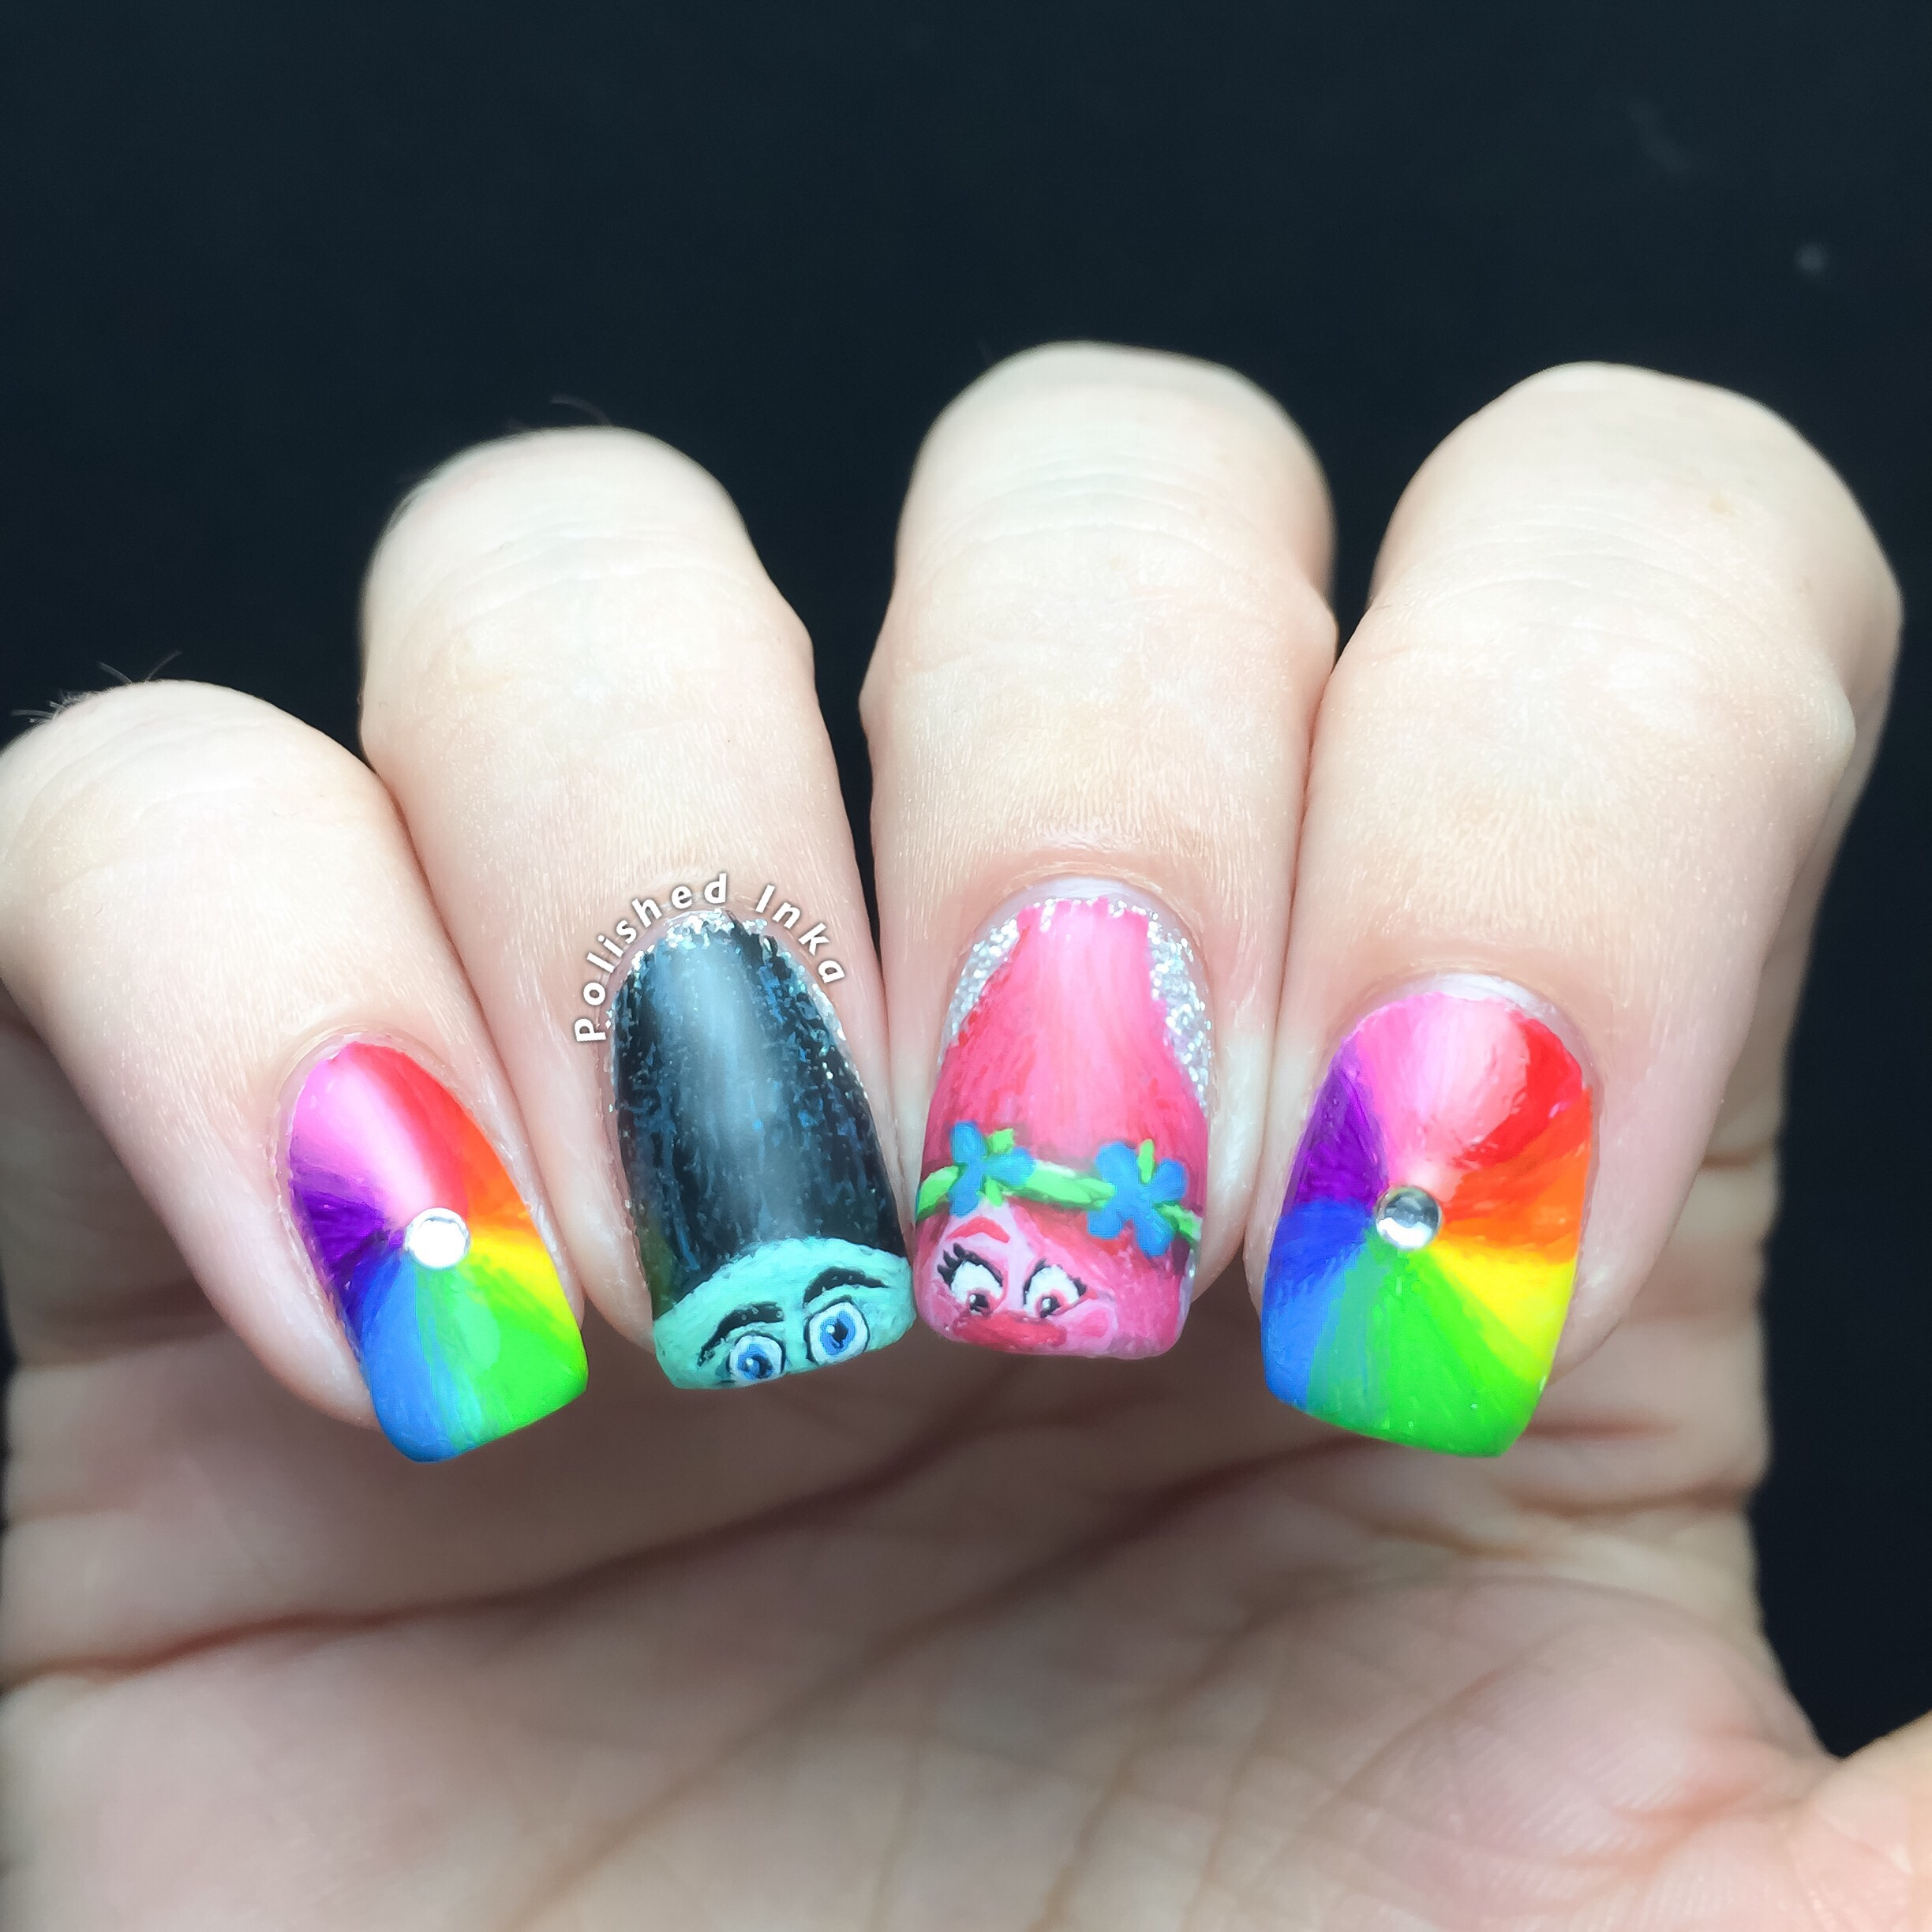 Pics Of Nail Art: Trolls Movie Nail Art